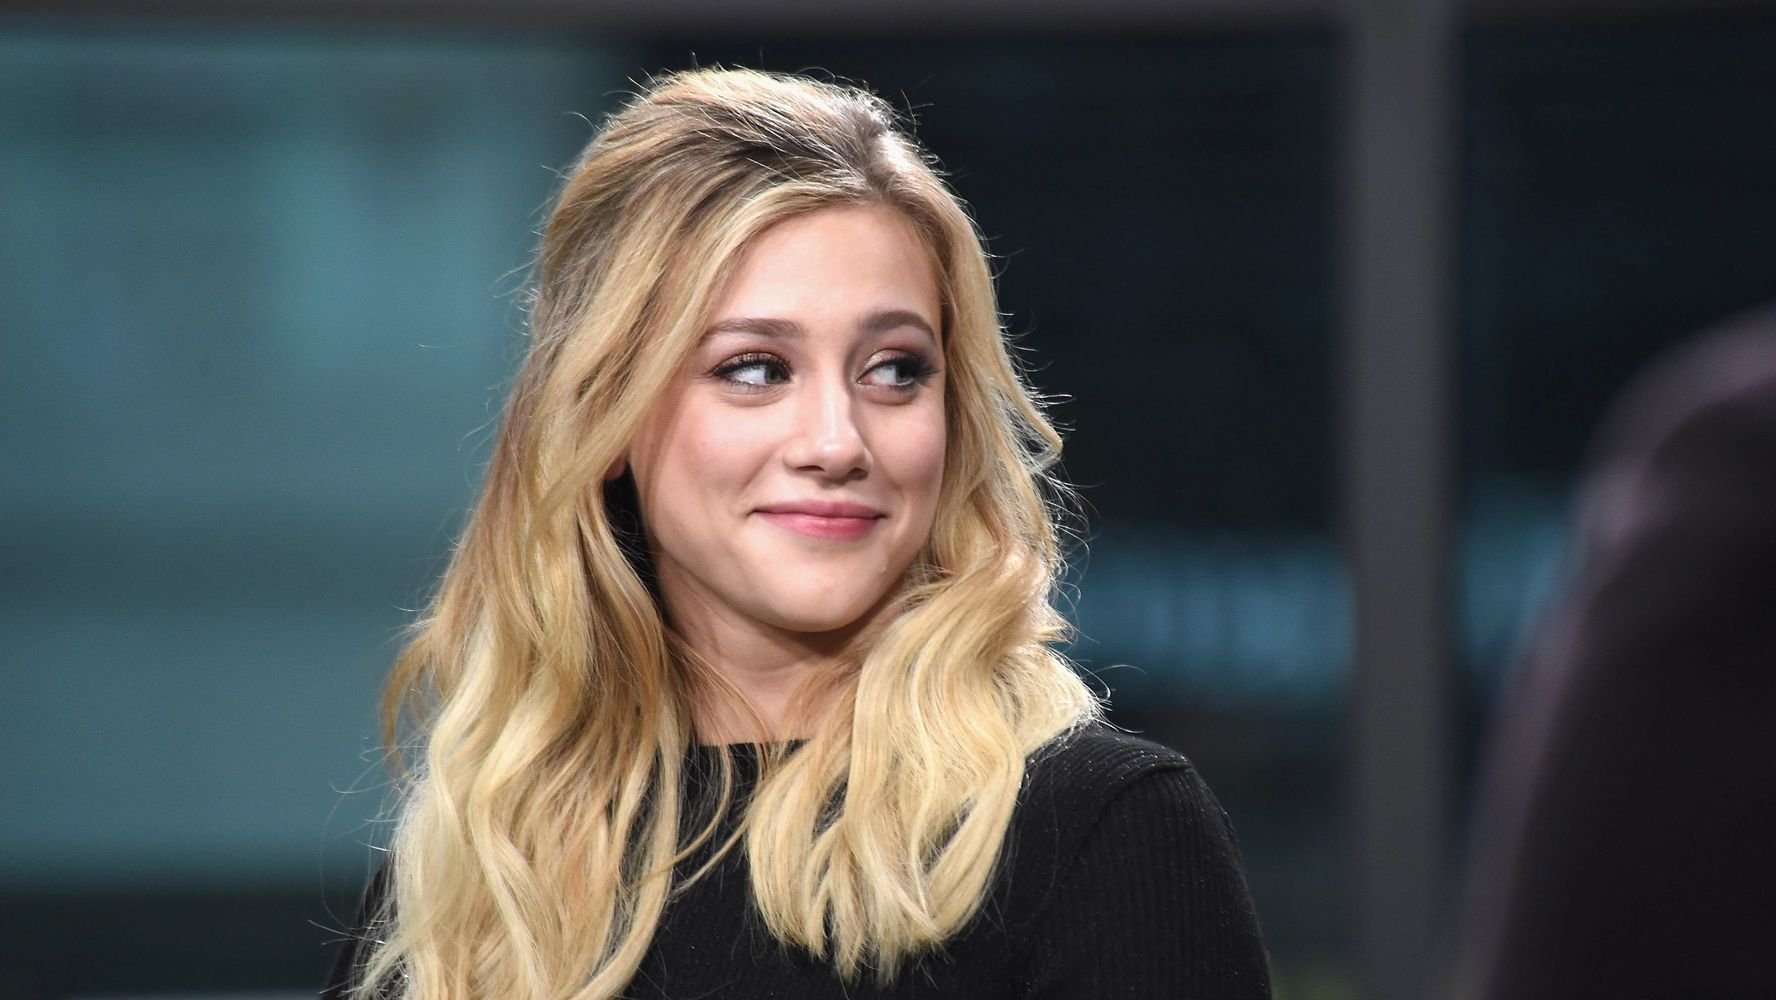 Lili Reinhart, Riverdale actress, apologizes for topless